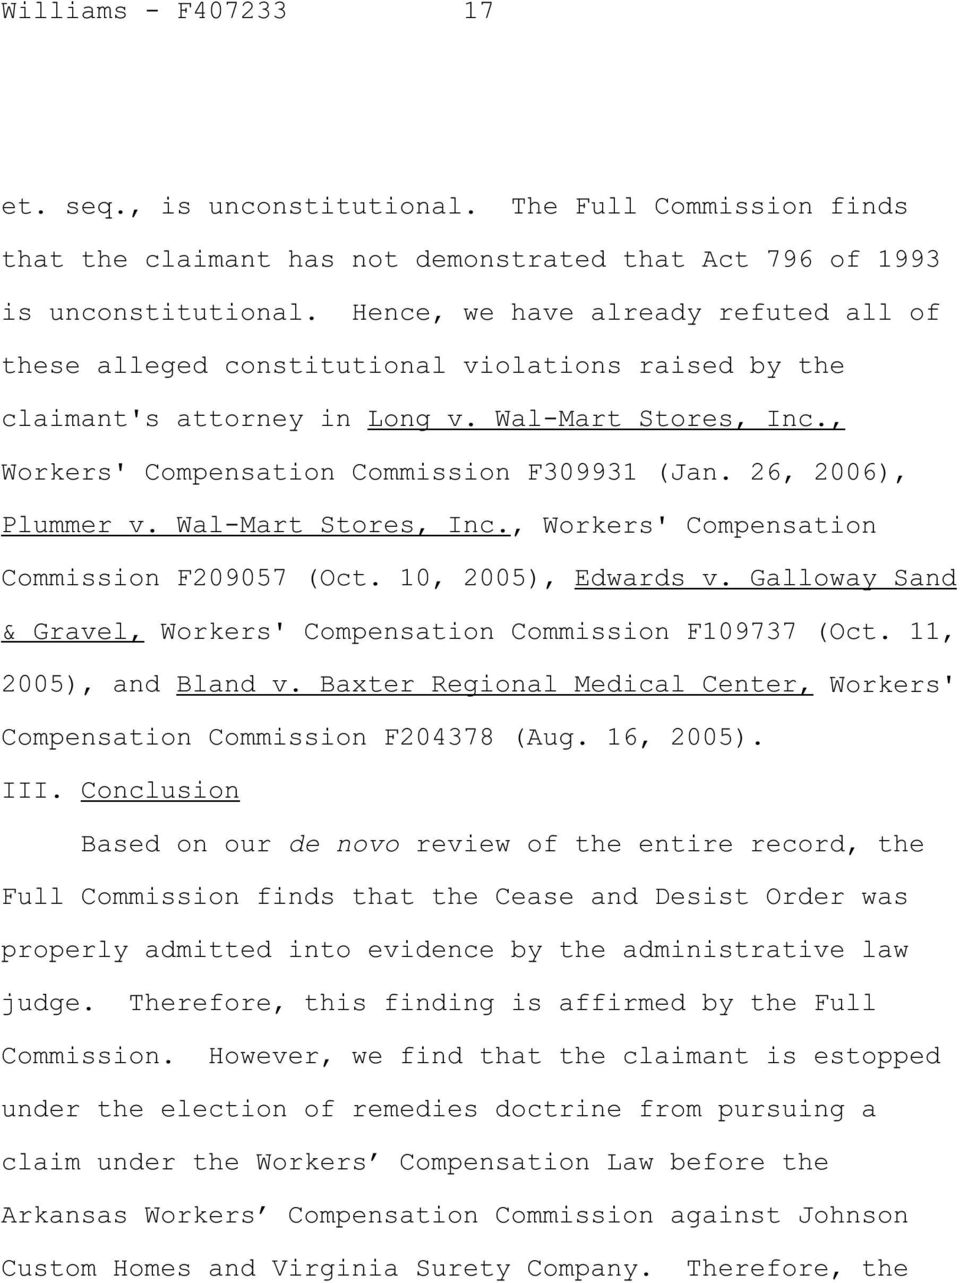 26, 2006), Plummer v. Wal-Mart Stores, Inc., Workers' Compensation Commission F209057 (Oct. 10, 2005), Edwards v. Galloway Sand & Gravel, Workers' Compensation Commission F109737 (Oct.